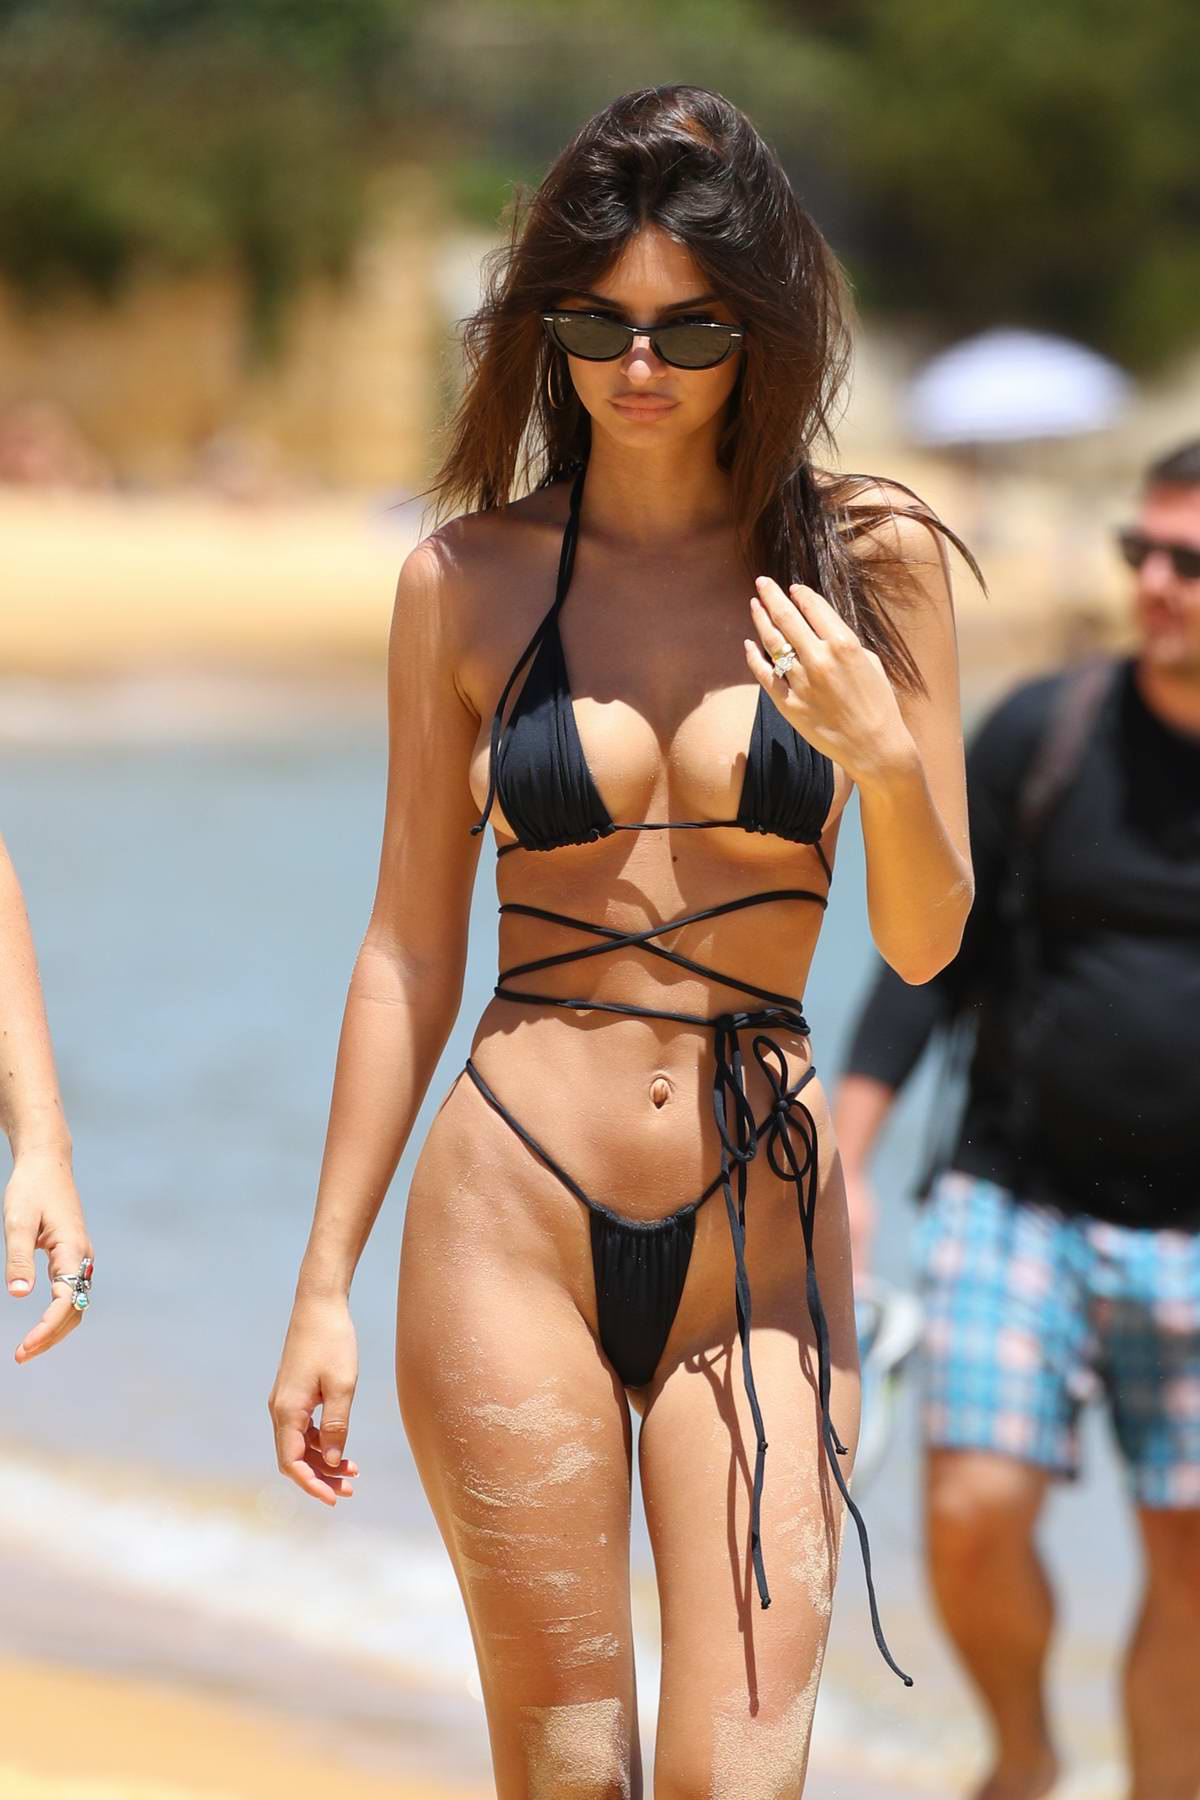 photos of sexiest woman in the world in Gold Coast